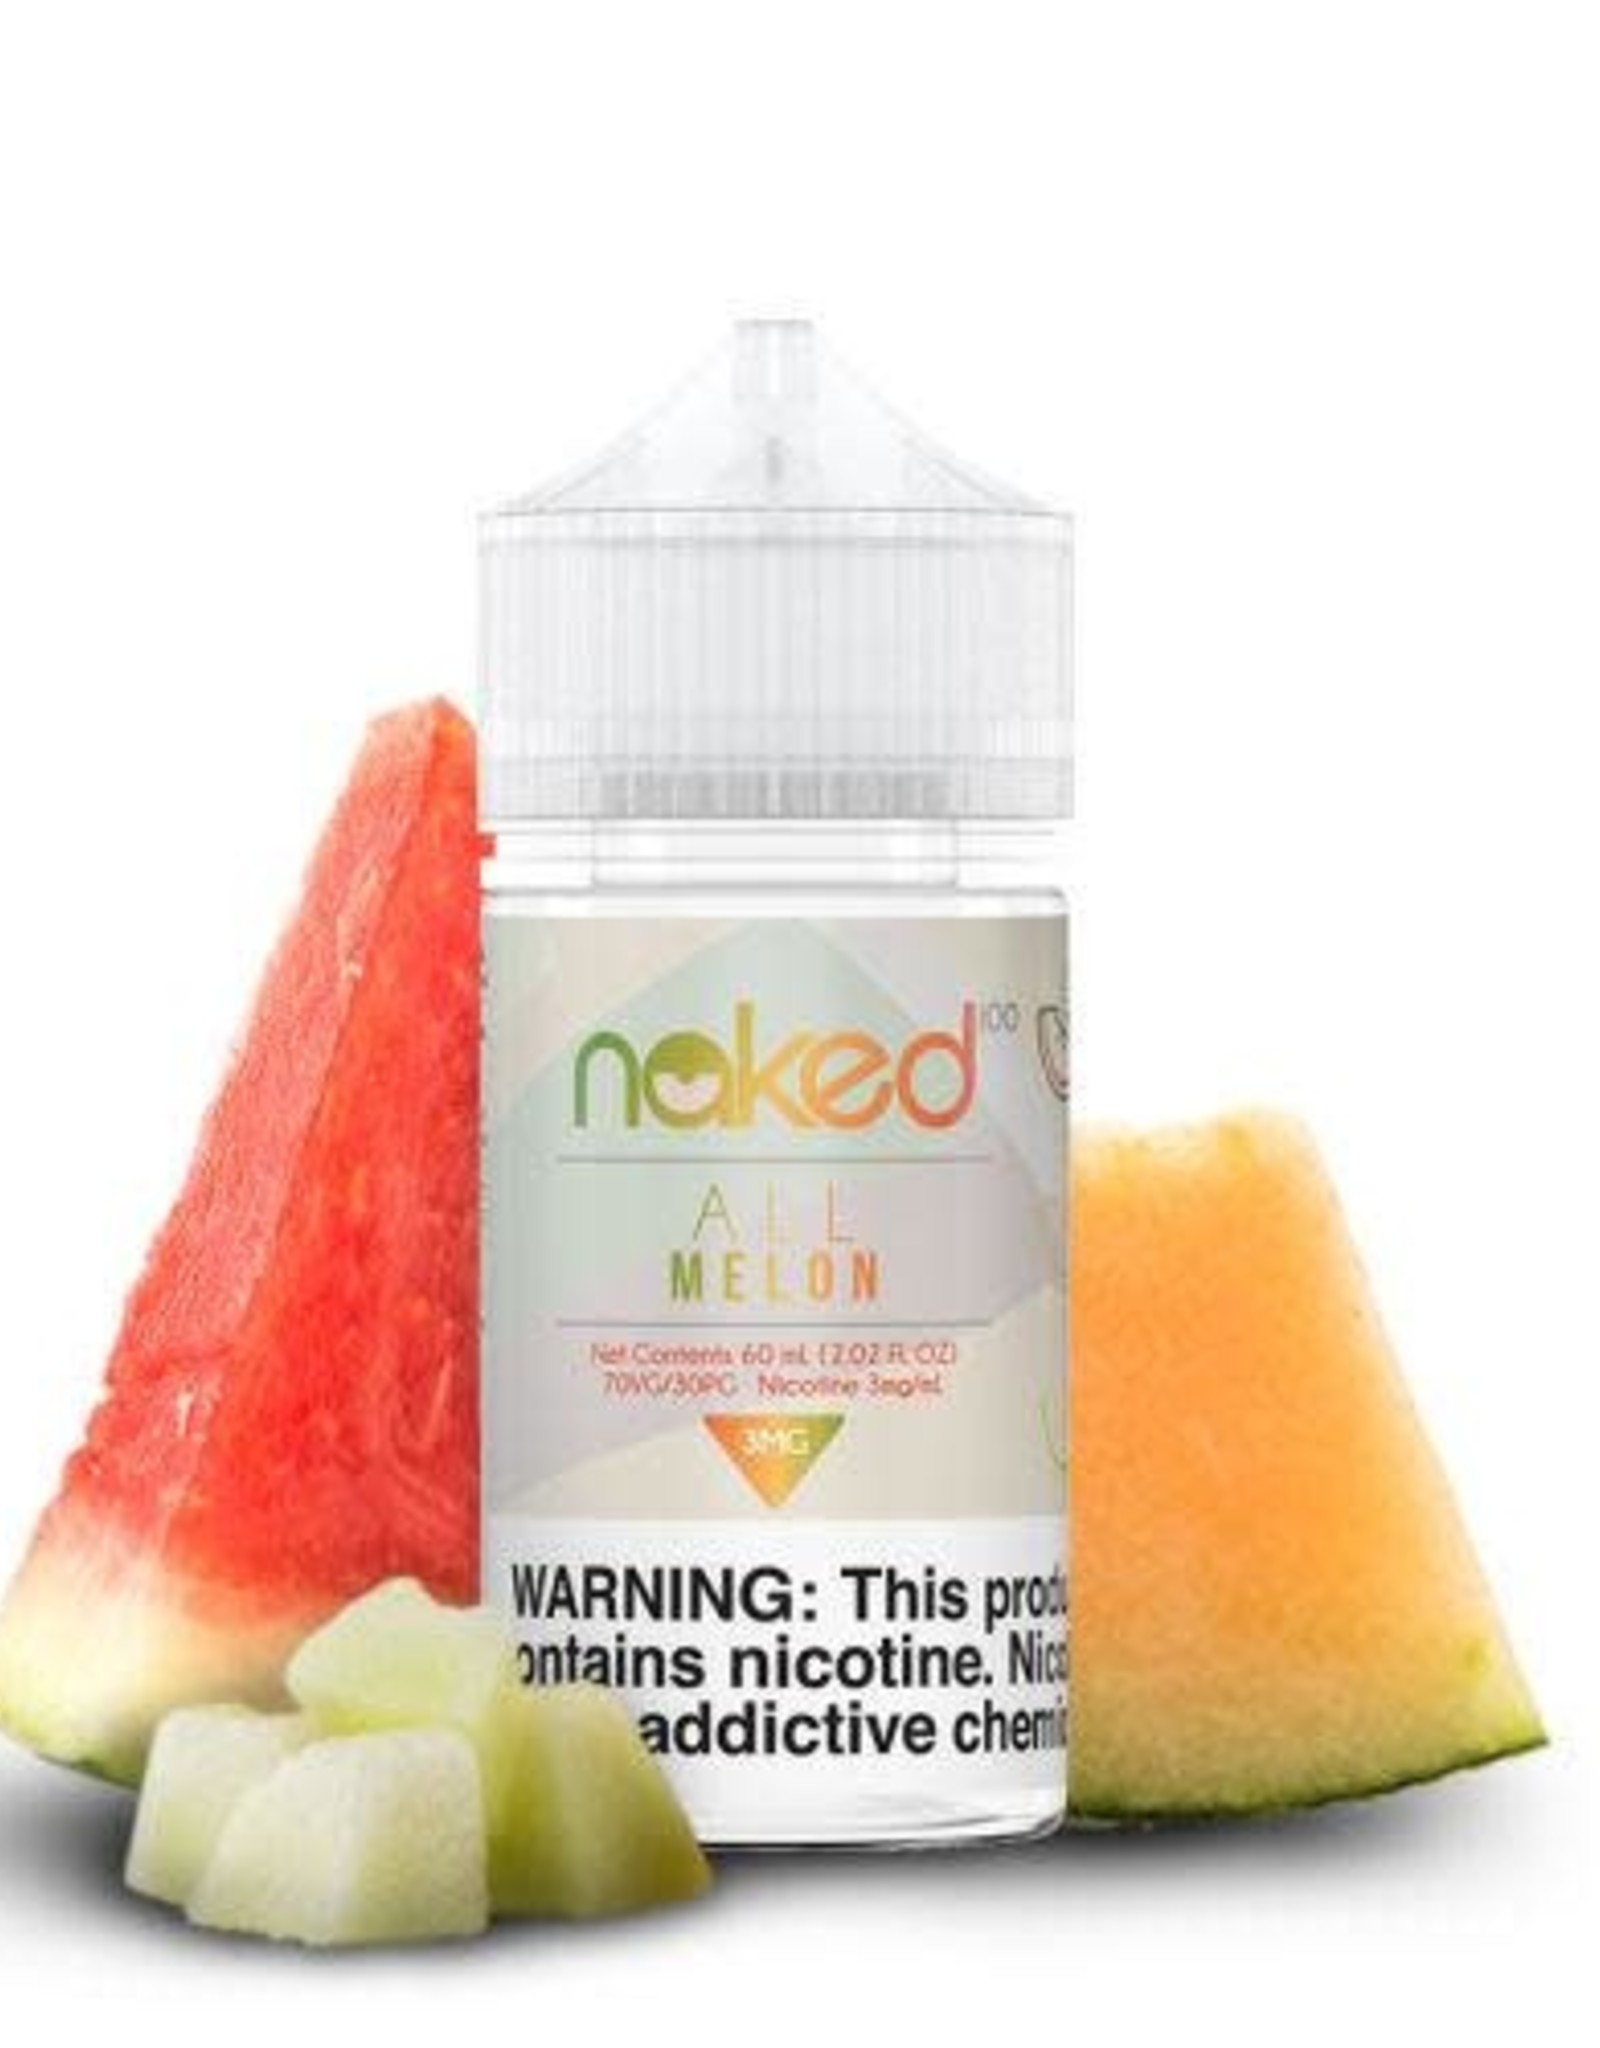 Naked100 All Melon 60mL